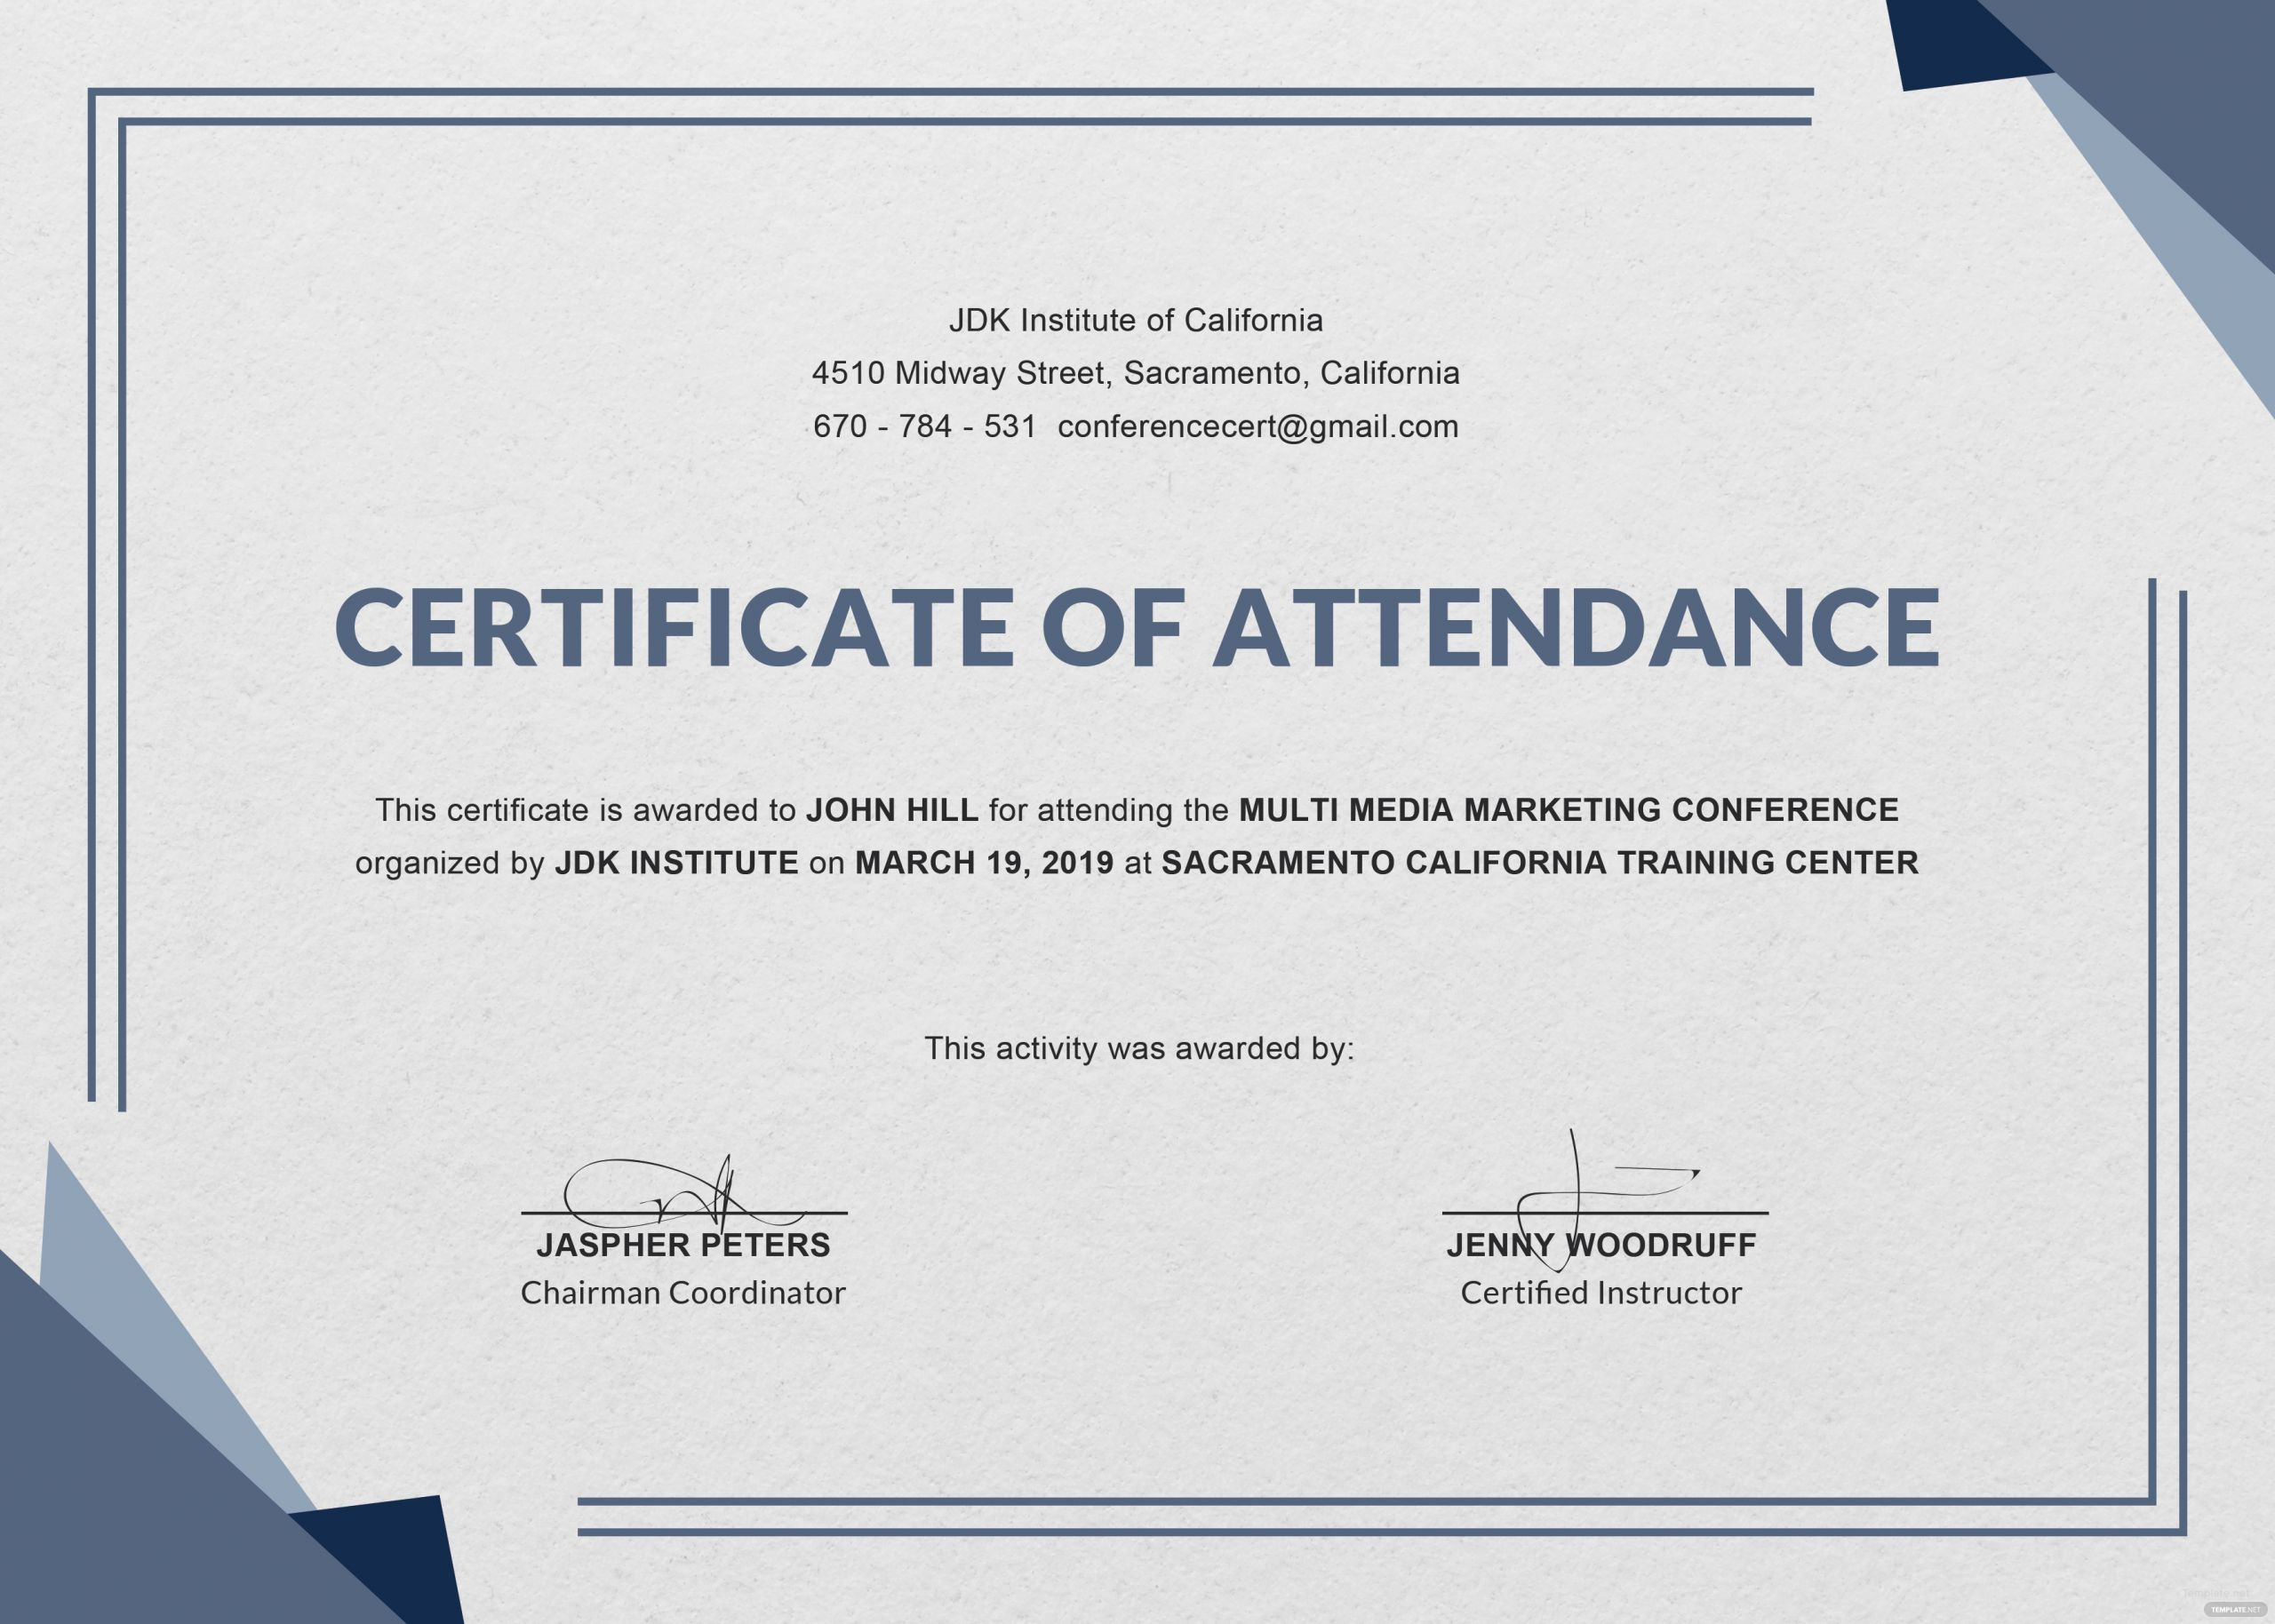 Certificate Of attendance Template Free Inspirational Certificate Templates Ms Word Perfect attendance